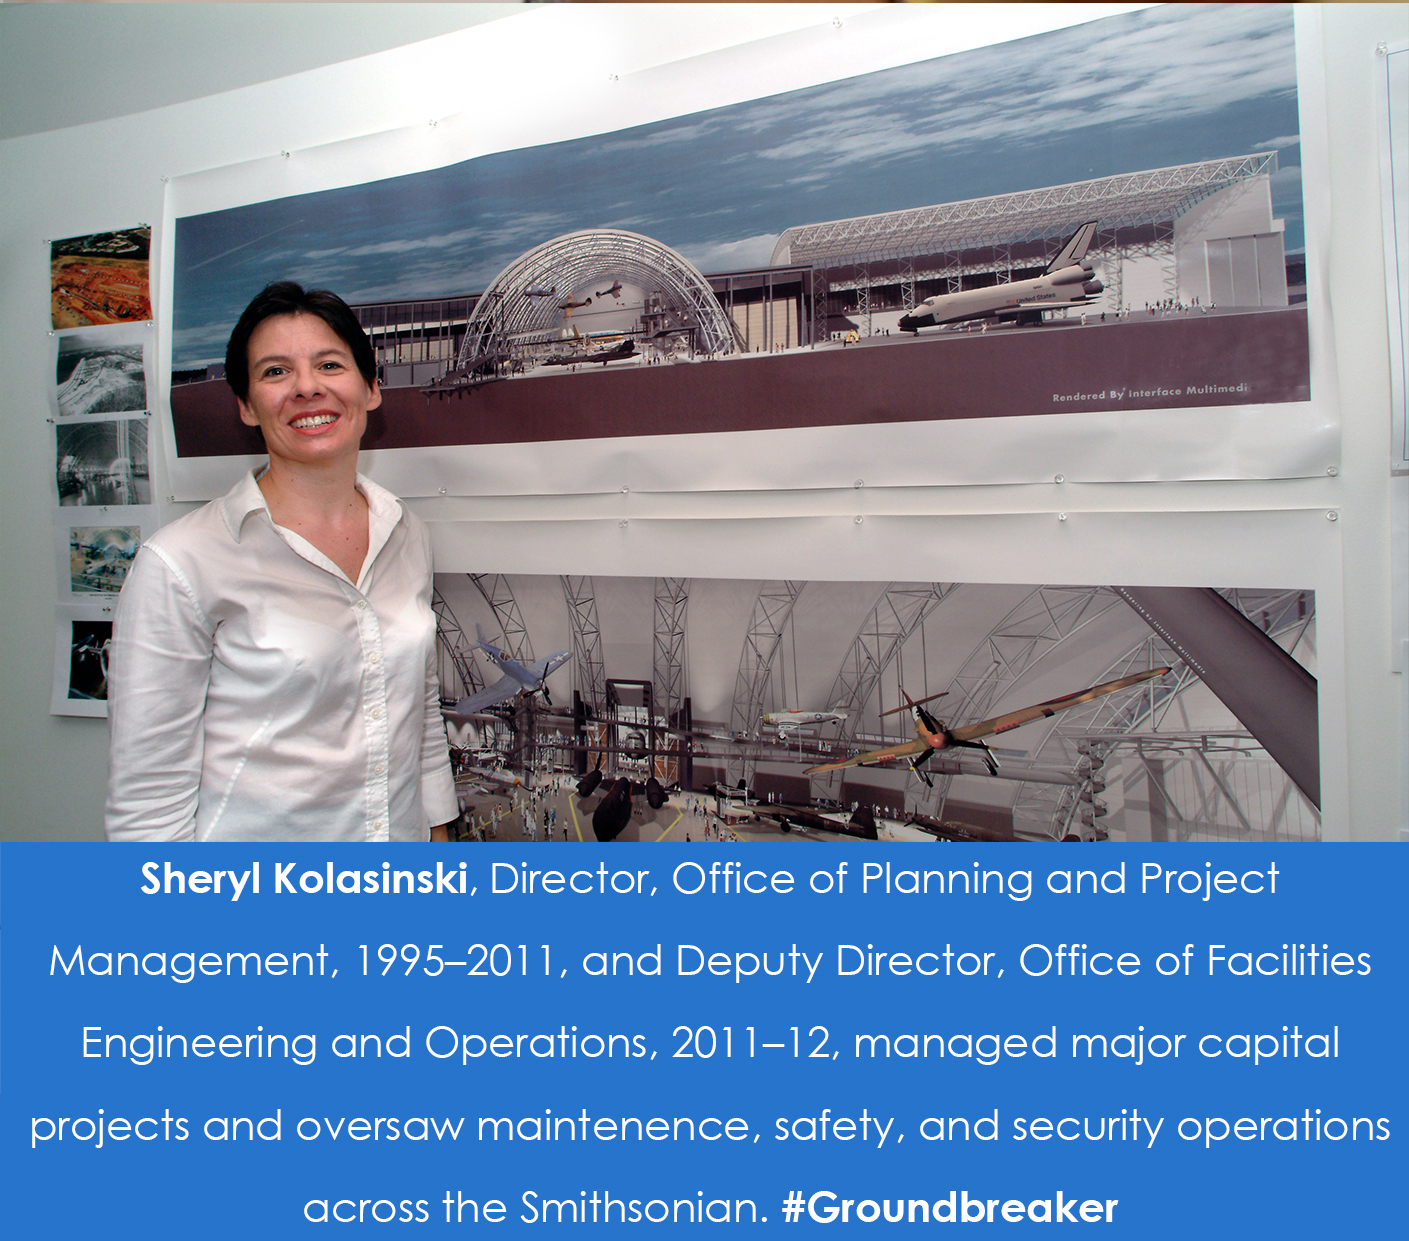 A woman stands in front of renderings of the Udvar-Hazy Center that are hanging on the wall.